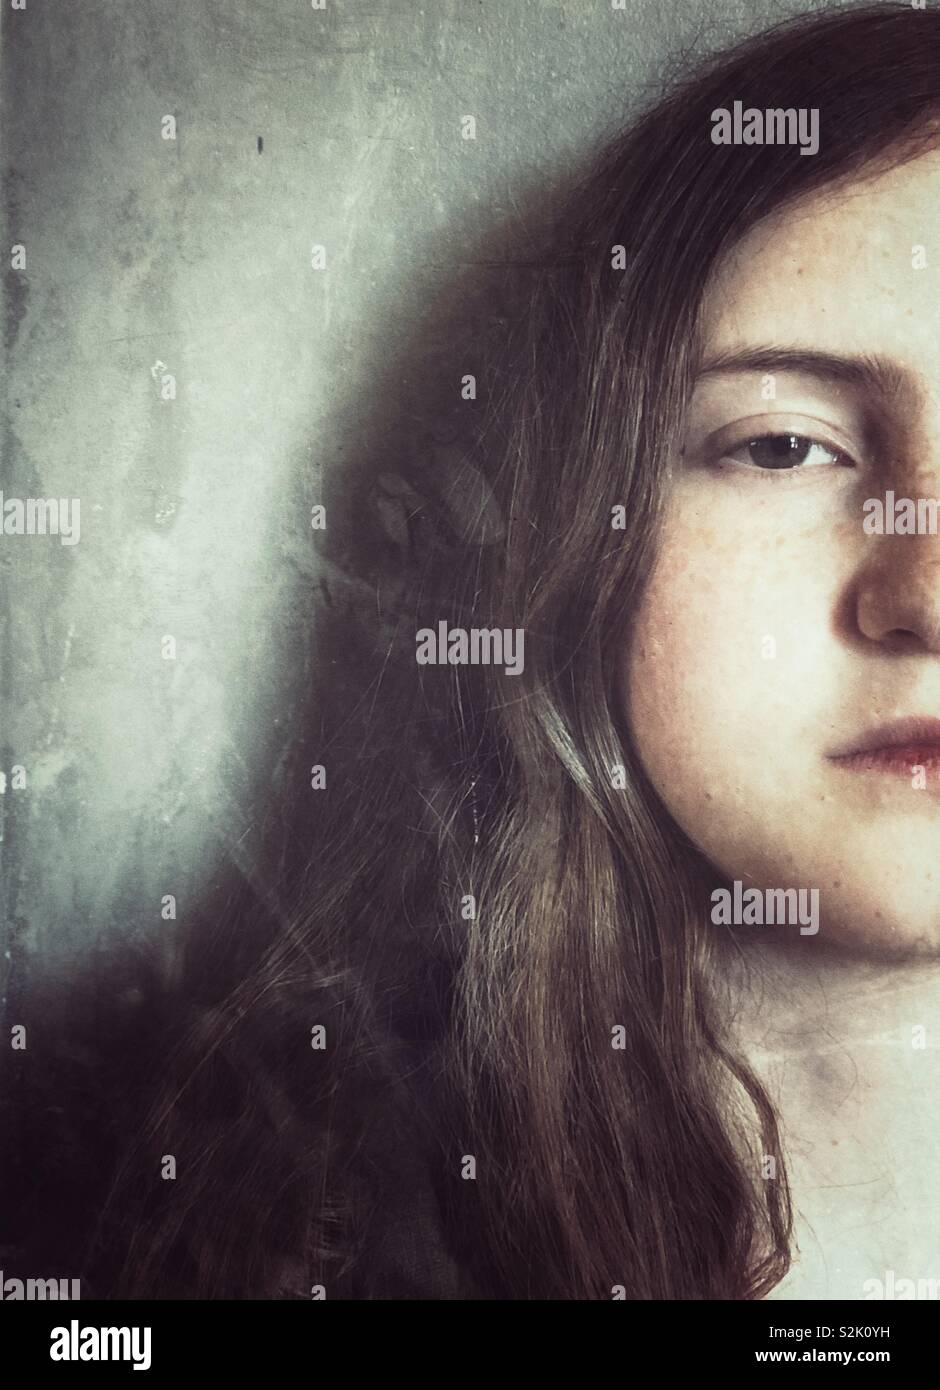 Creative portrait of teenage girl half face with serious expression - Stock Image